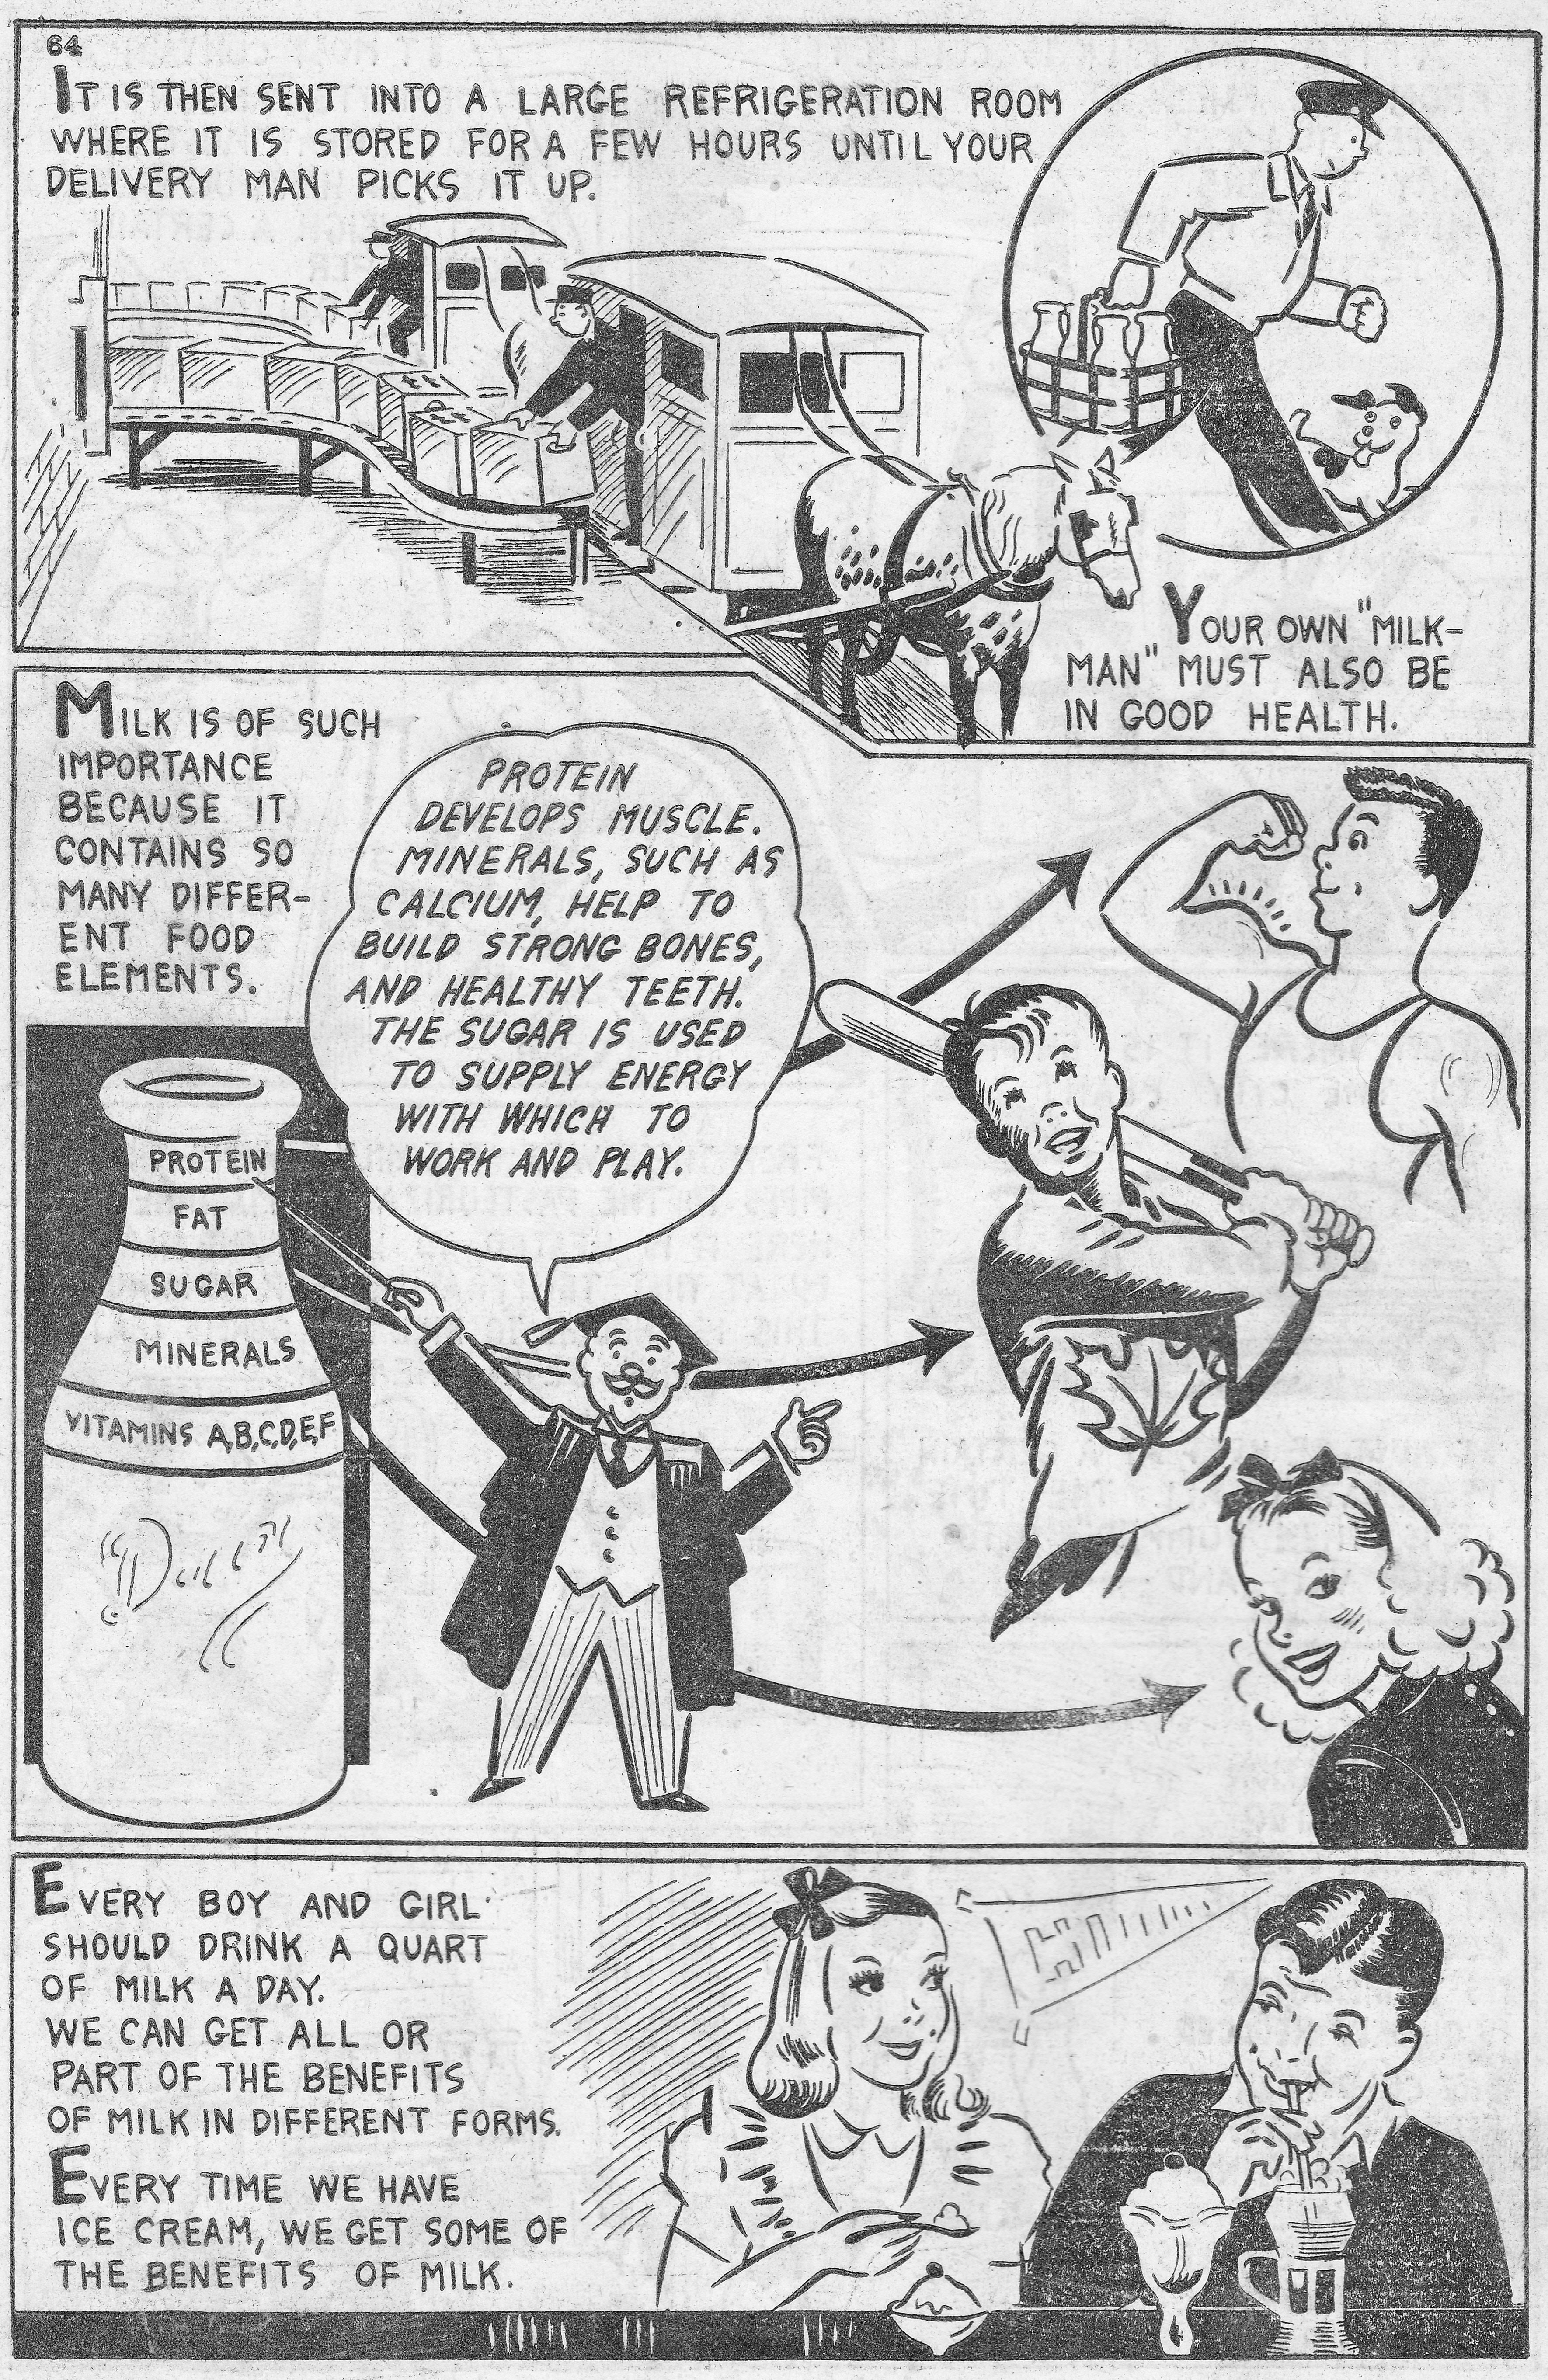 C:\Users\Robert\Documents\CARTOONING ILLUSTRATION ANIMATION\IMAGE BY CARTOONIST\N\NED, Canadian Heroes, 4-1 June 1944, 64.jpg